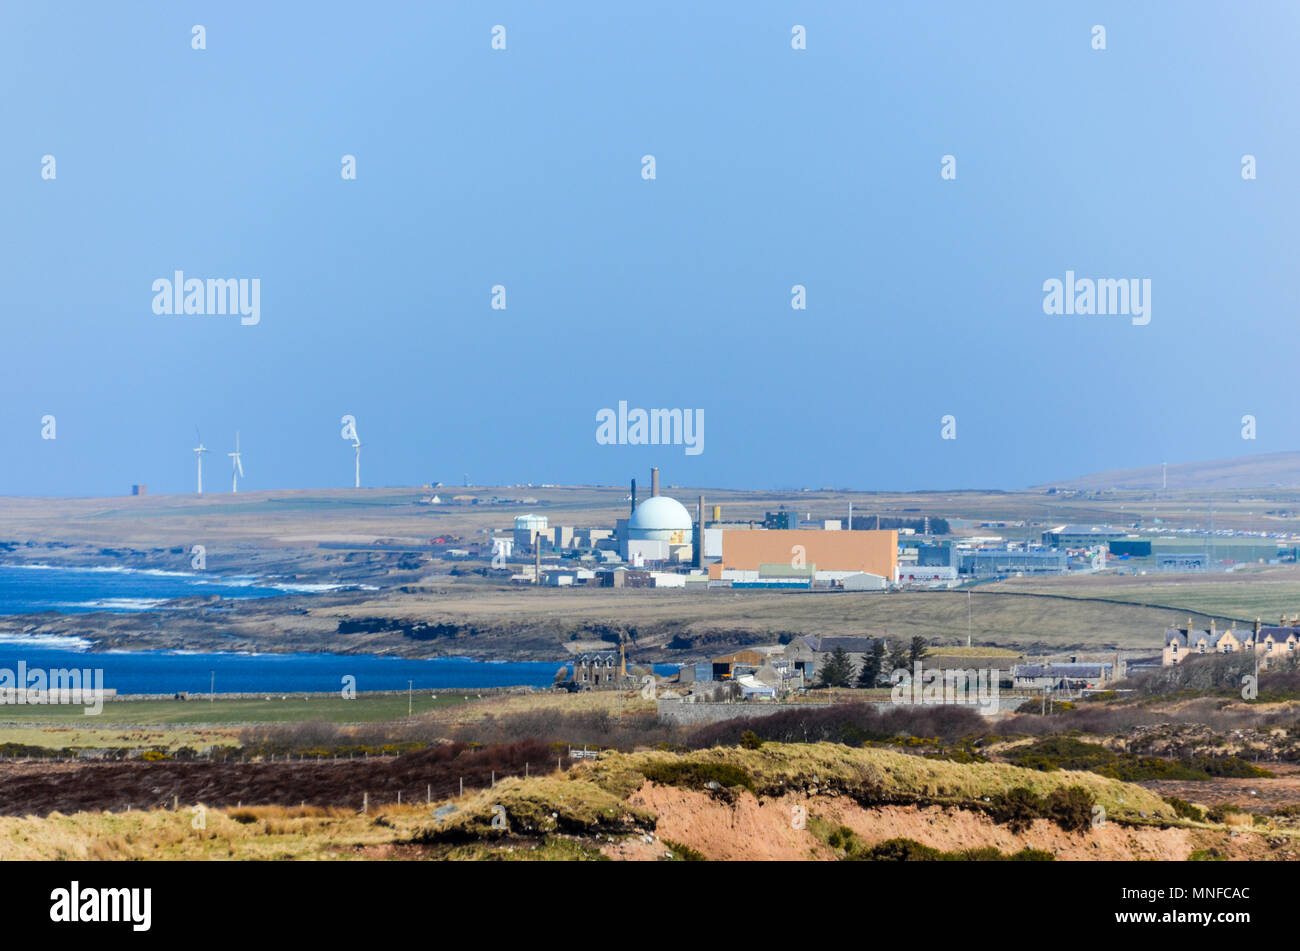 Dounreay nuclear power plant and facilities, in decommission phase, near Thurso, Scotland Stock Photo